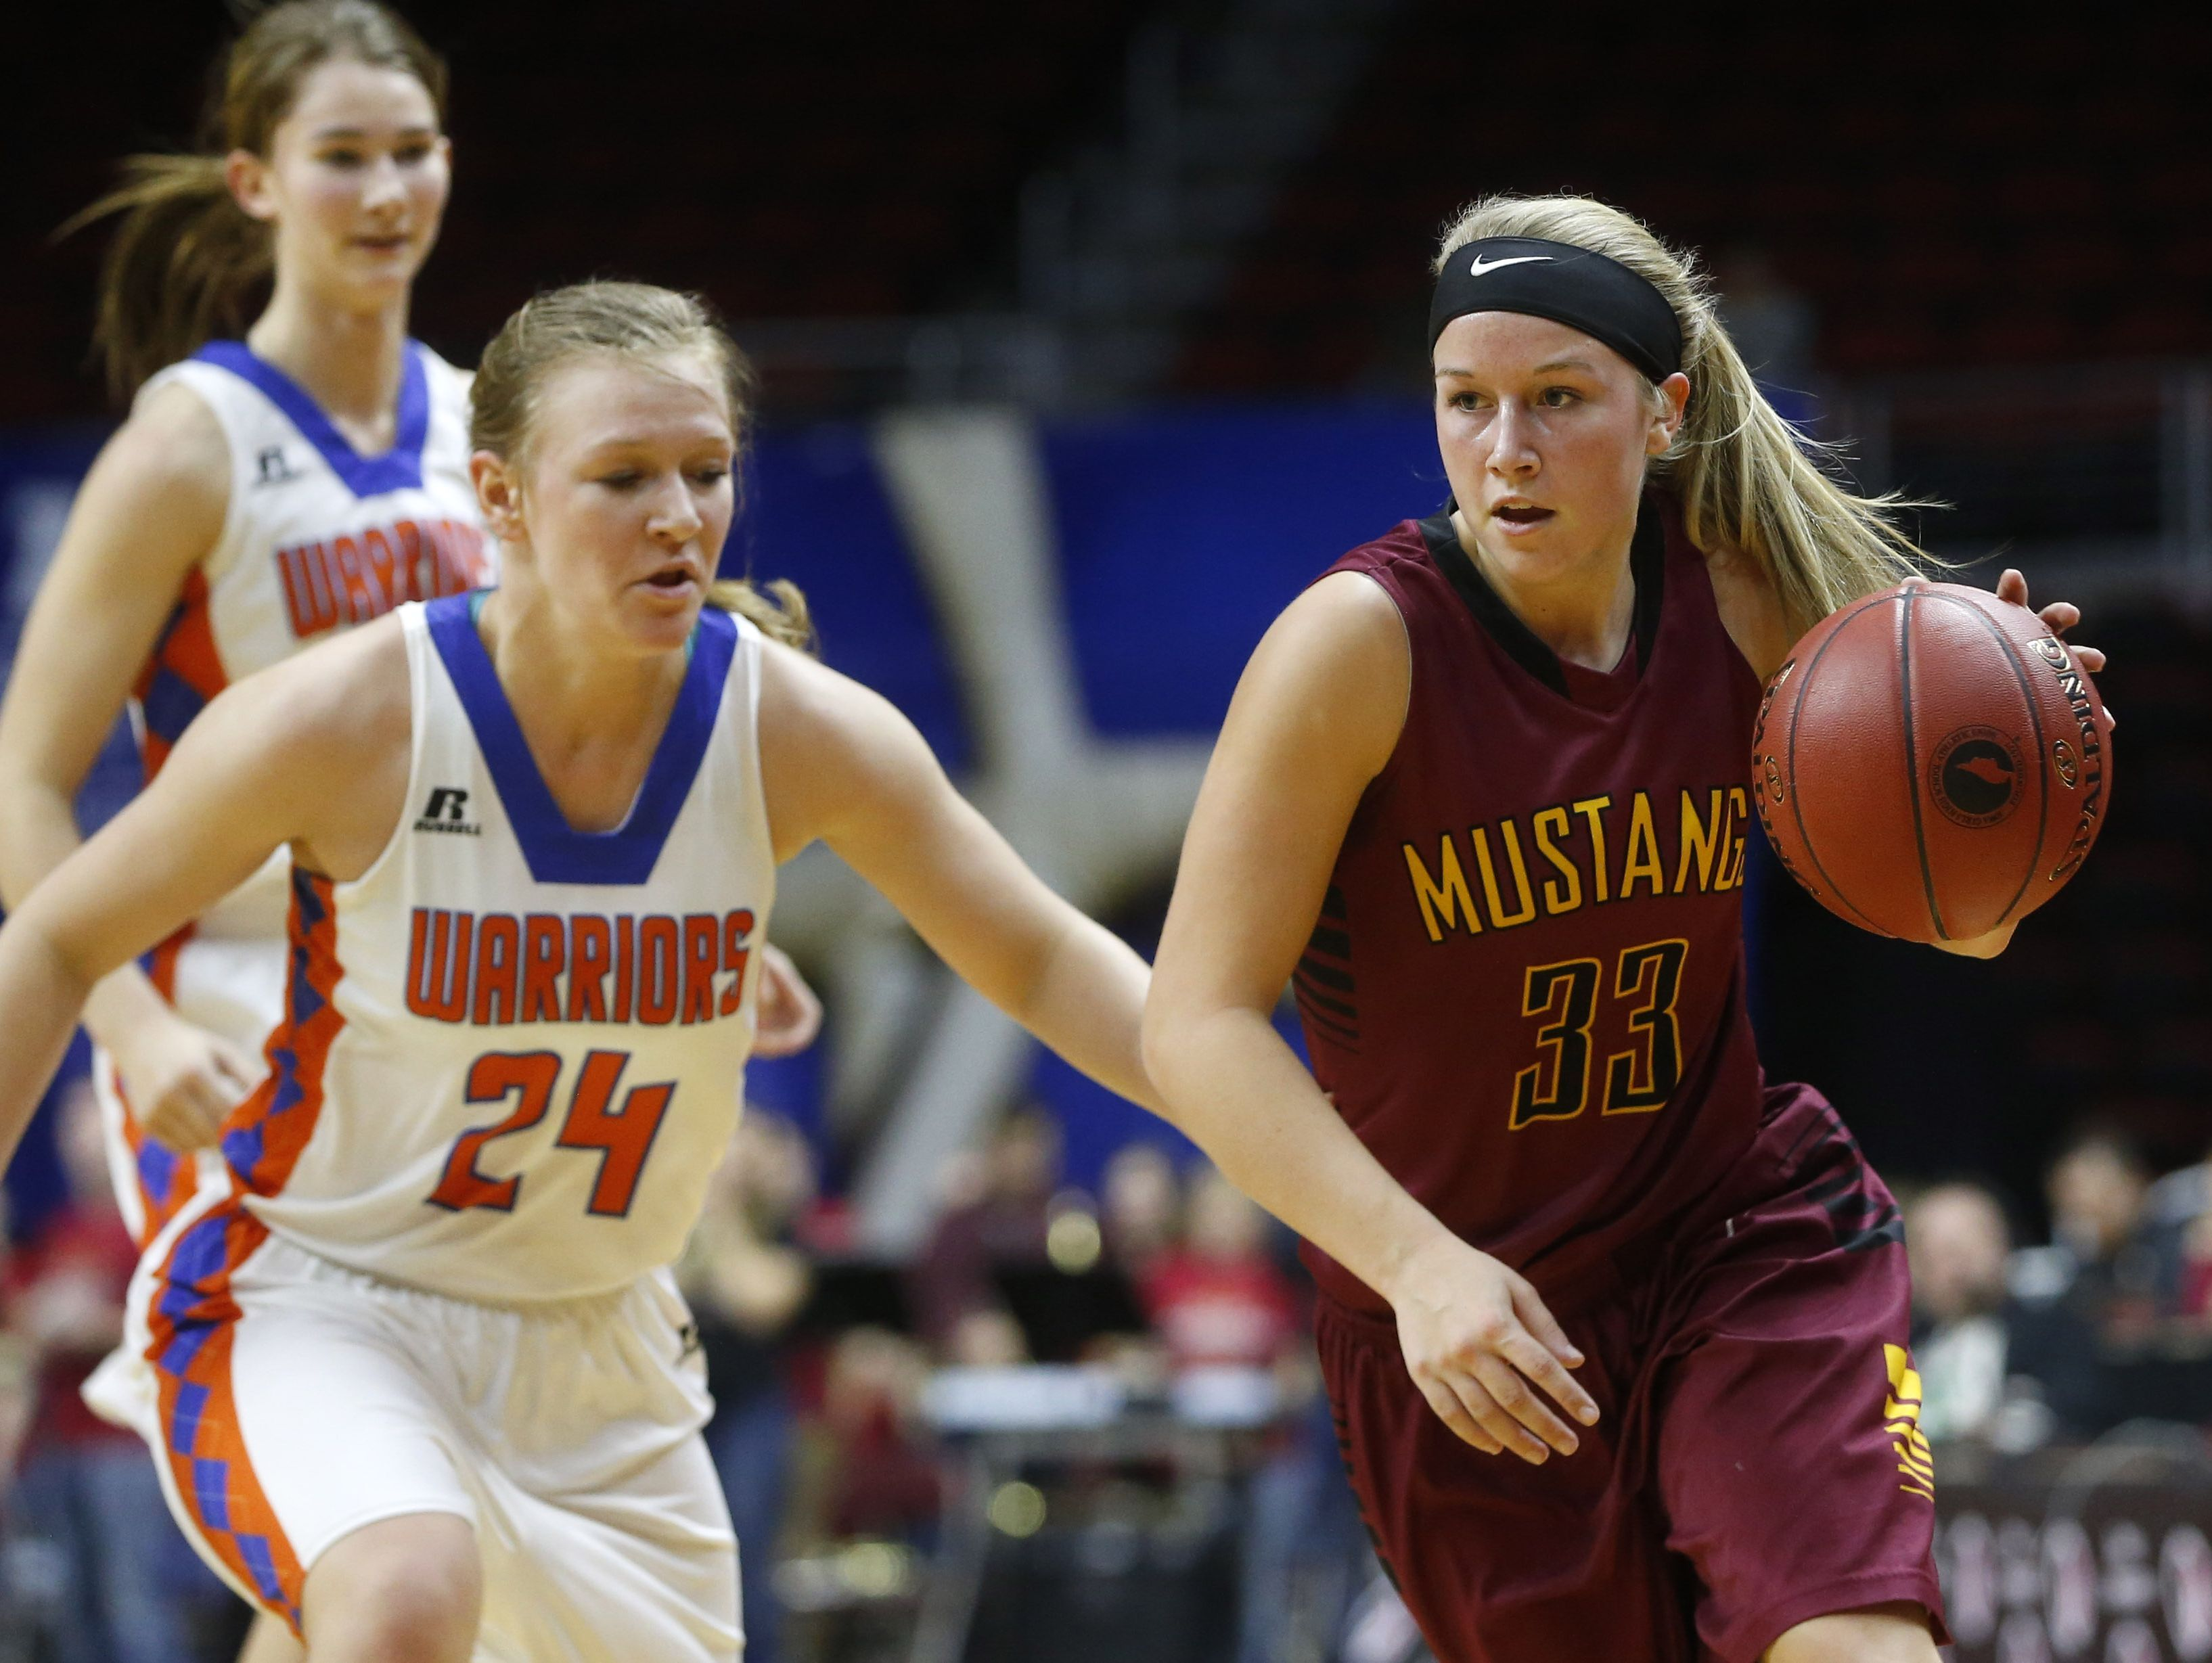 PCM senior Kayla Jennings (33) drives the ball around Sioux Center guard Shayla Post (24) on Tuesday, Feb. 28, 2017, during their 3A quarterfinal game at the 2017 Iowa Girls' State Basketball Tournament at Wells Fargo Arena in Des Moines.